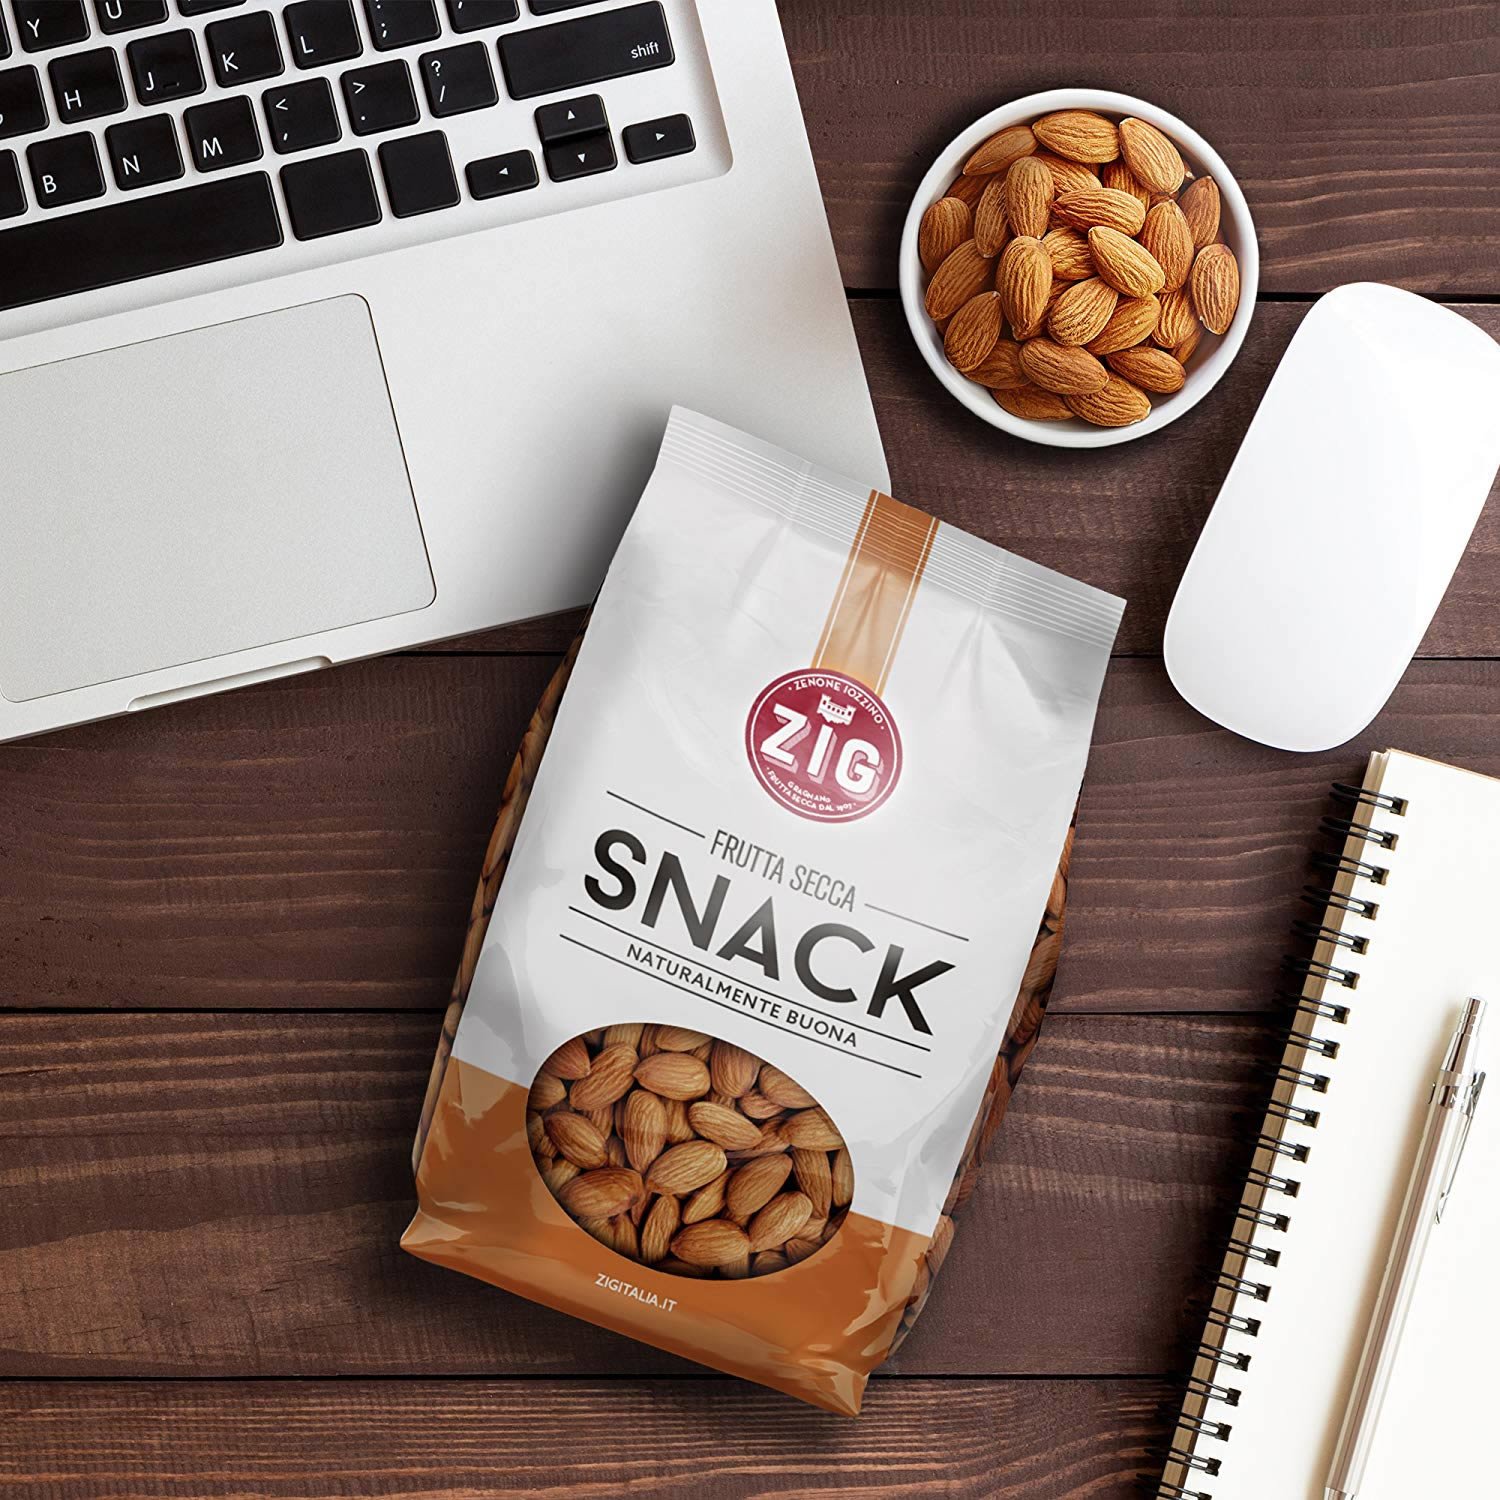 zig-snack-pc